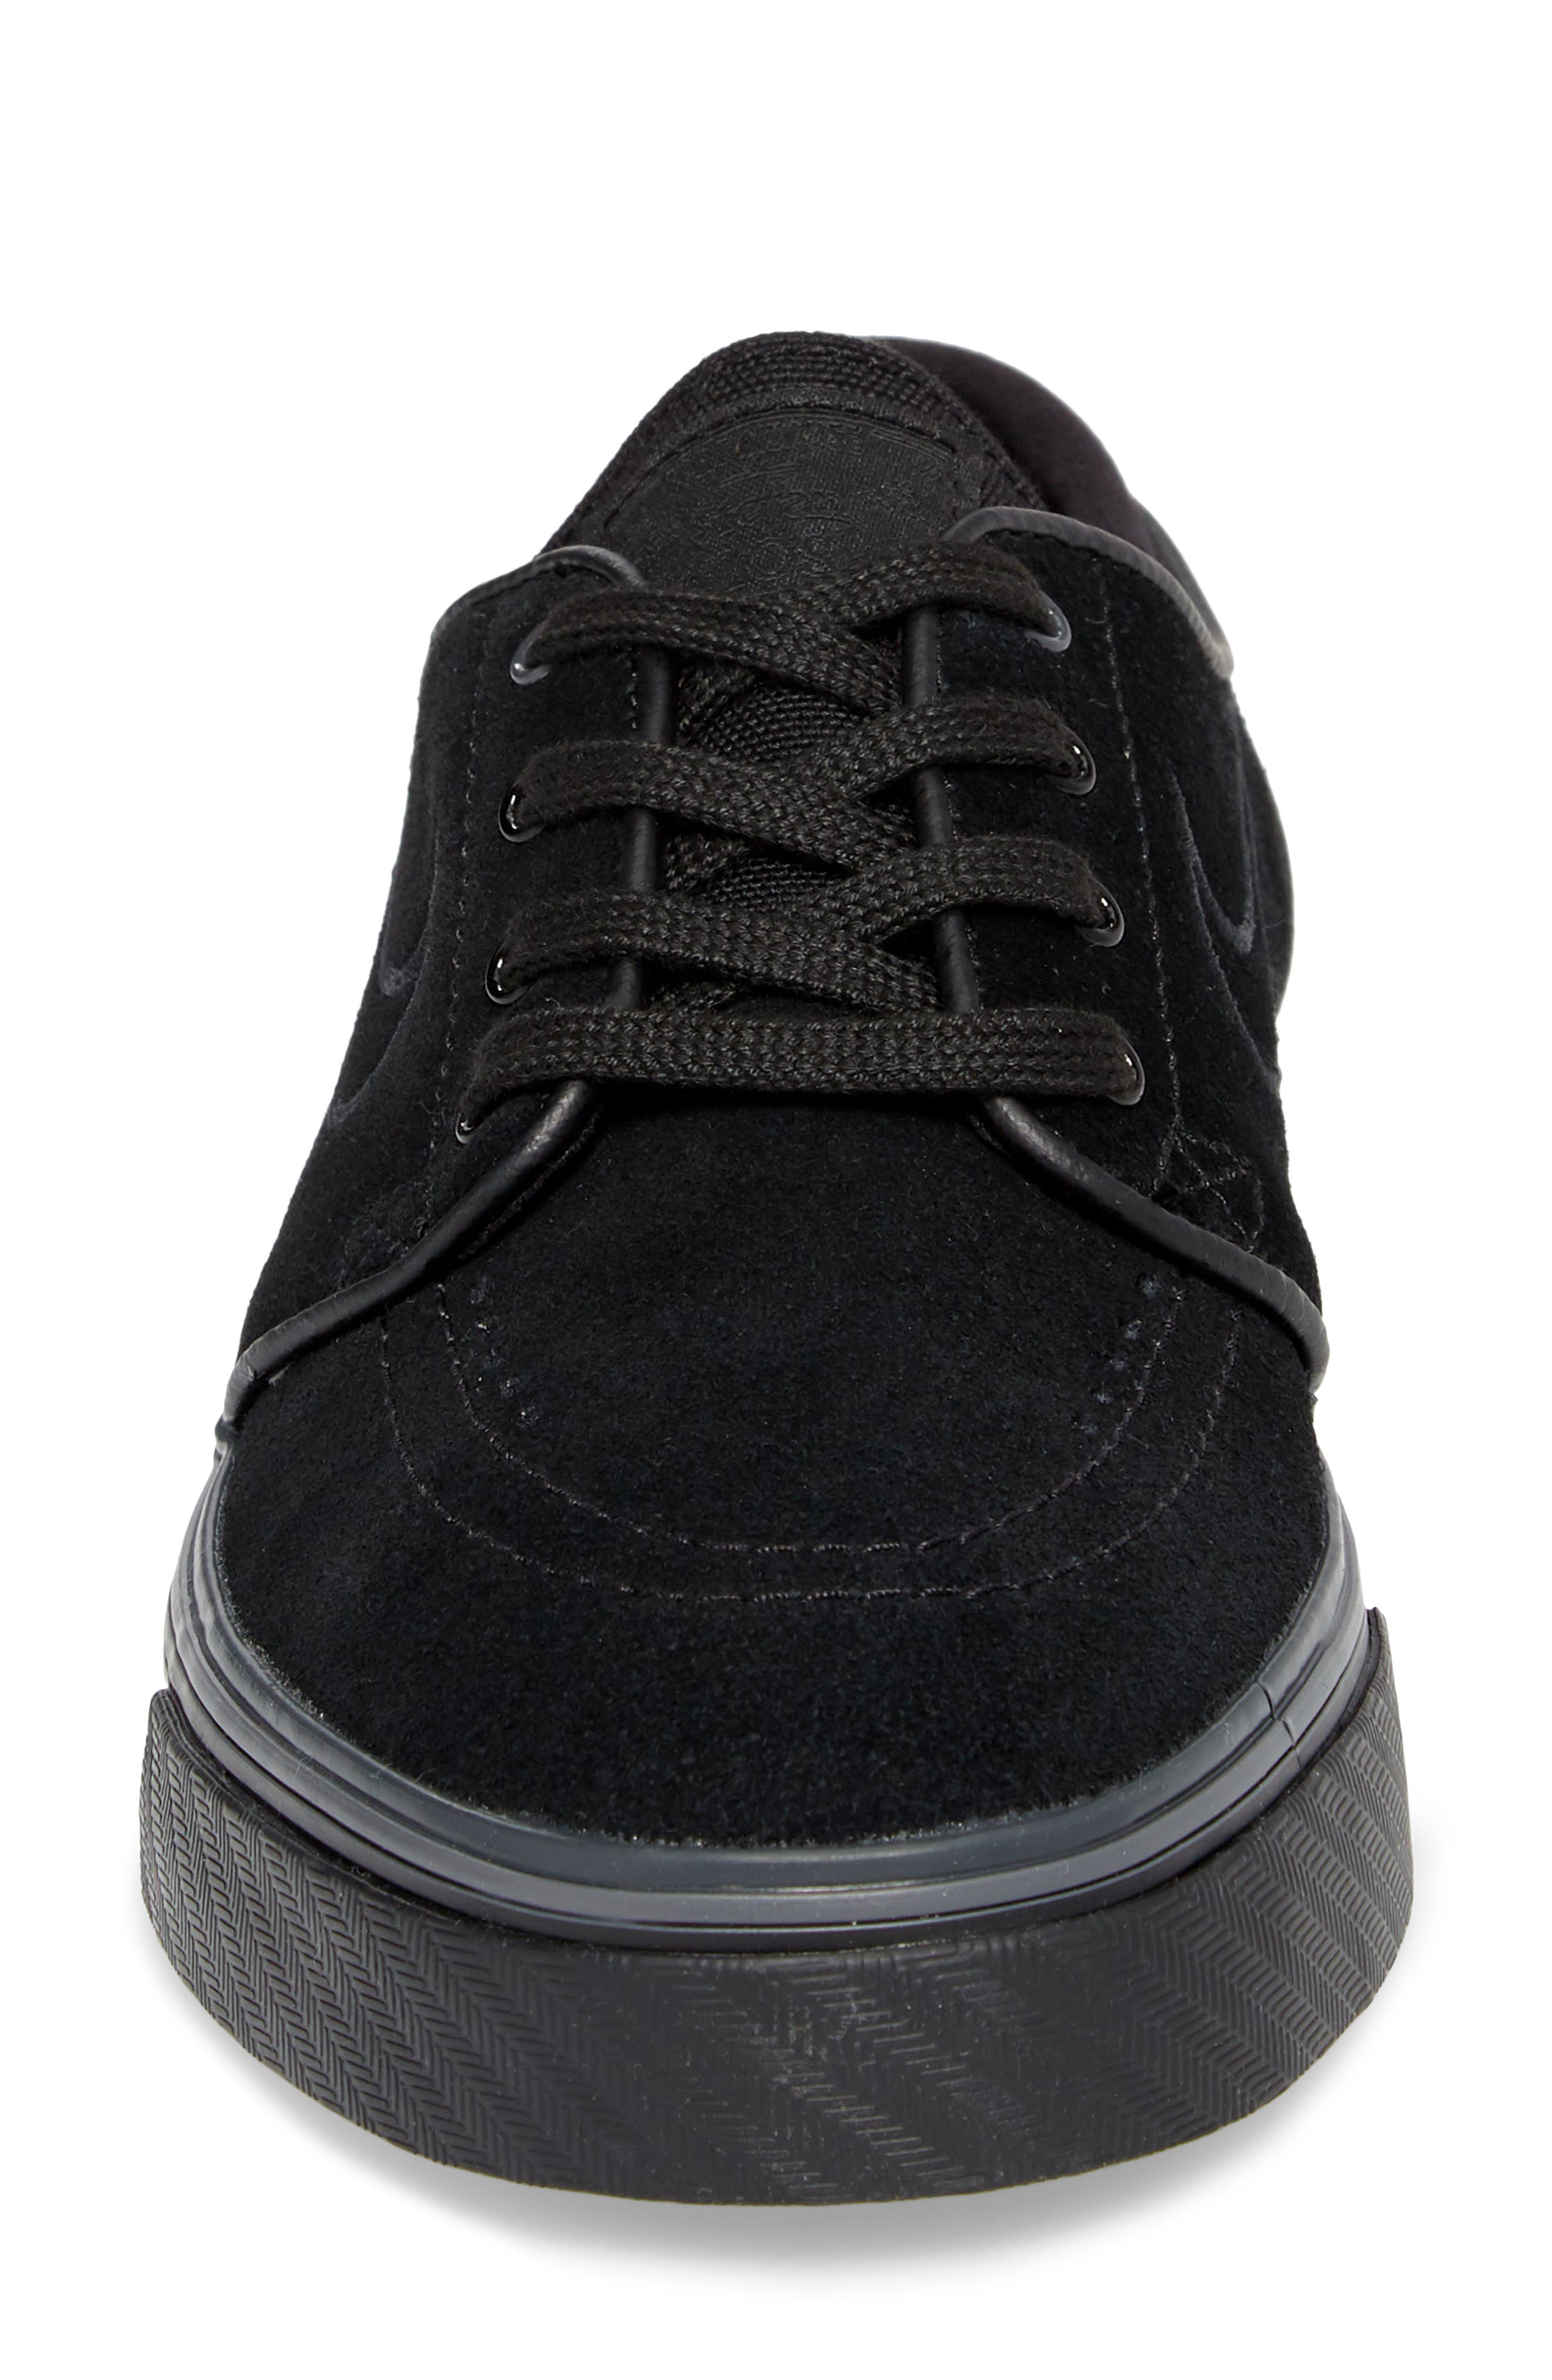 SB Air Zoom Stefan Janoski Skate Sneaker,                             Alternate thumbnail 4, color,                             Black/ Black/ Black